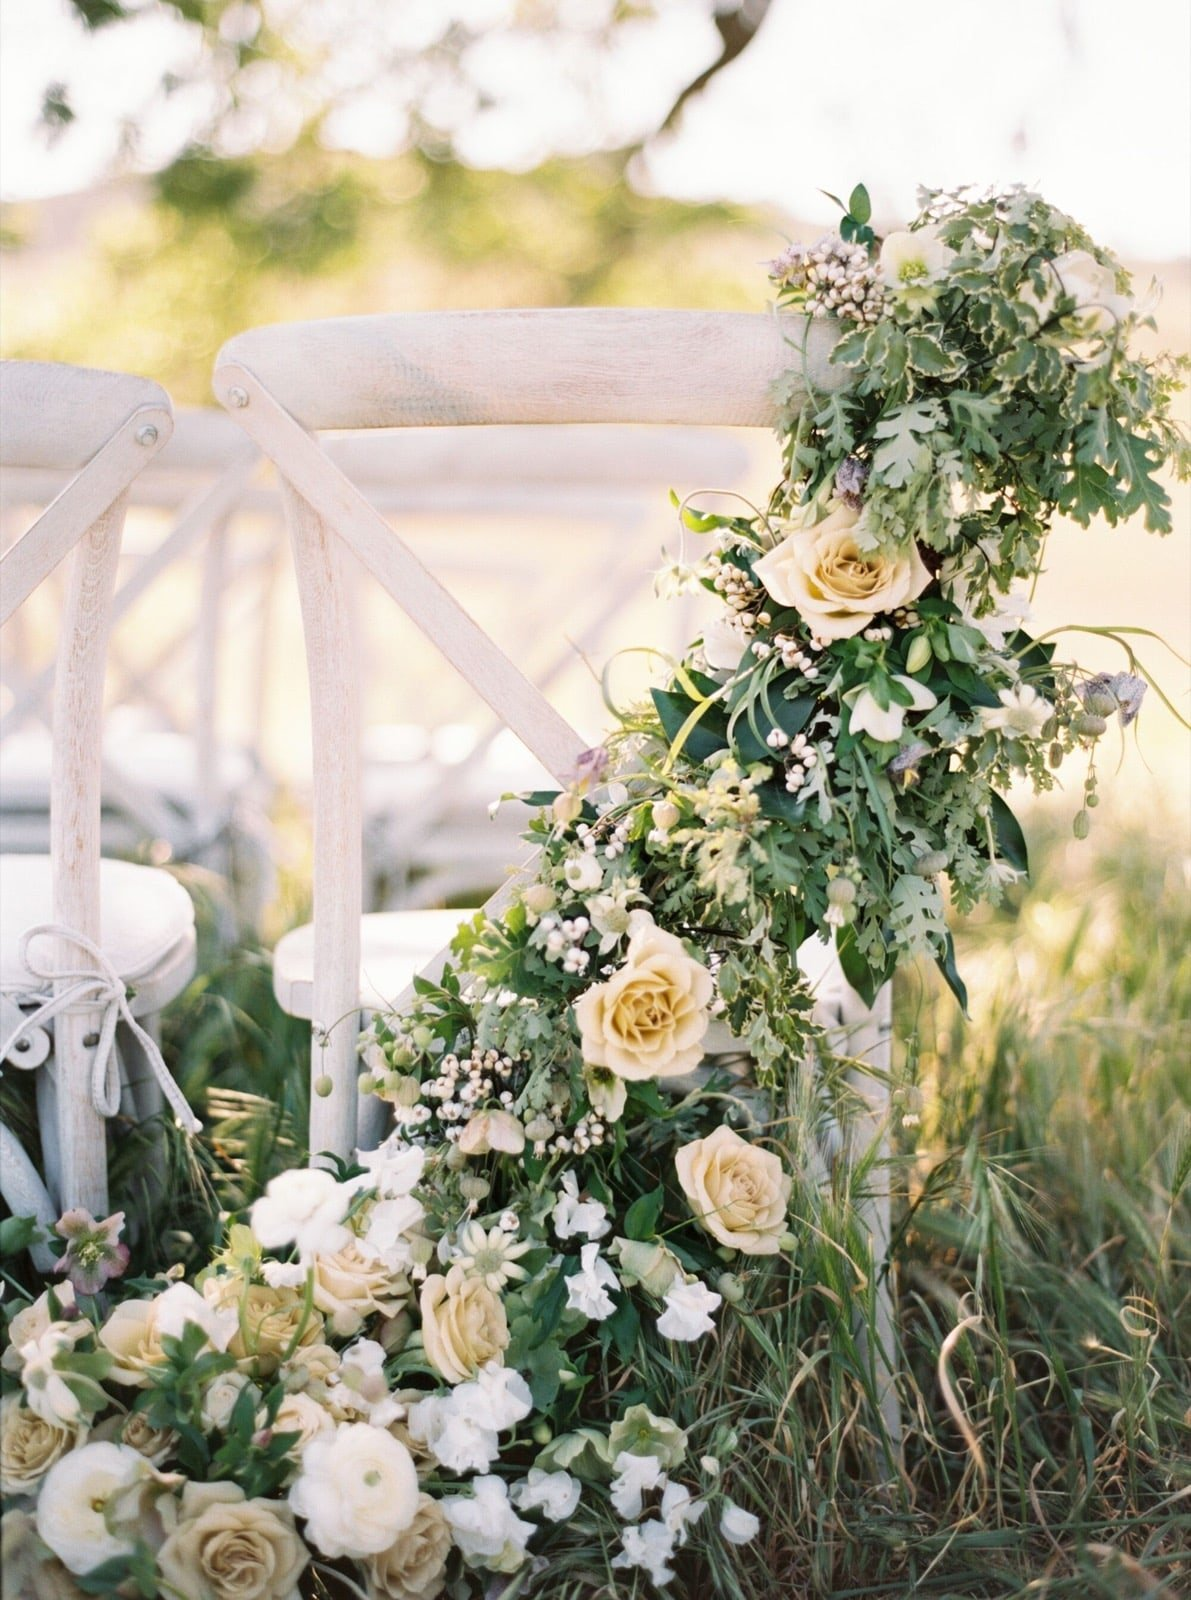 janna brown nashville florist and wedding designer-10